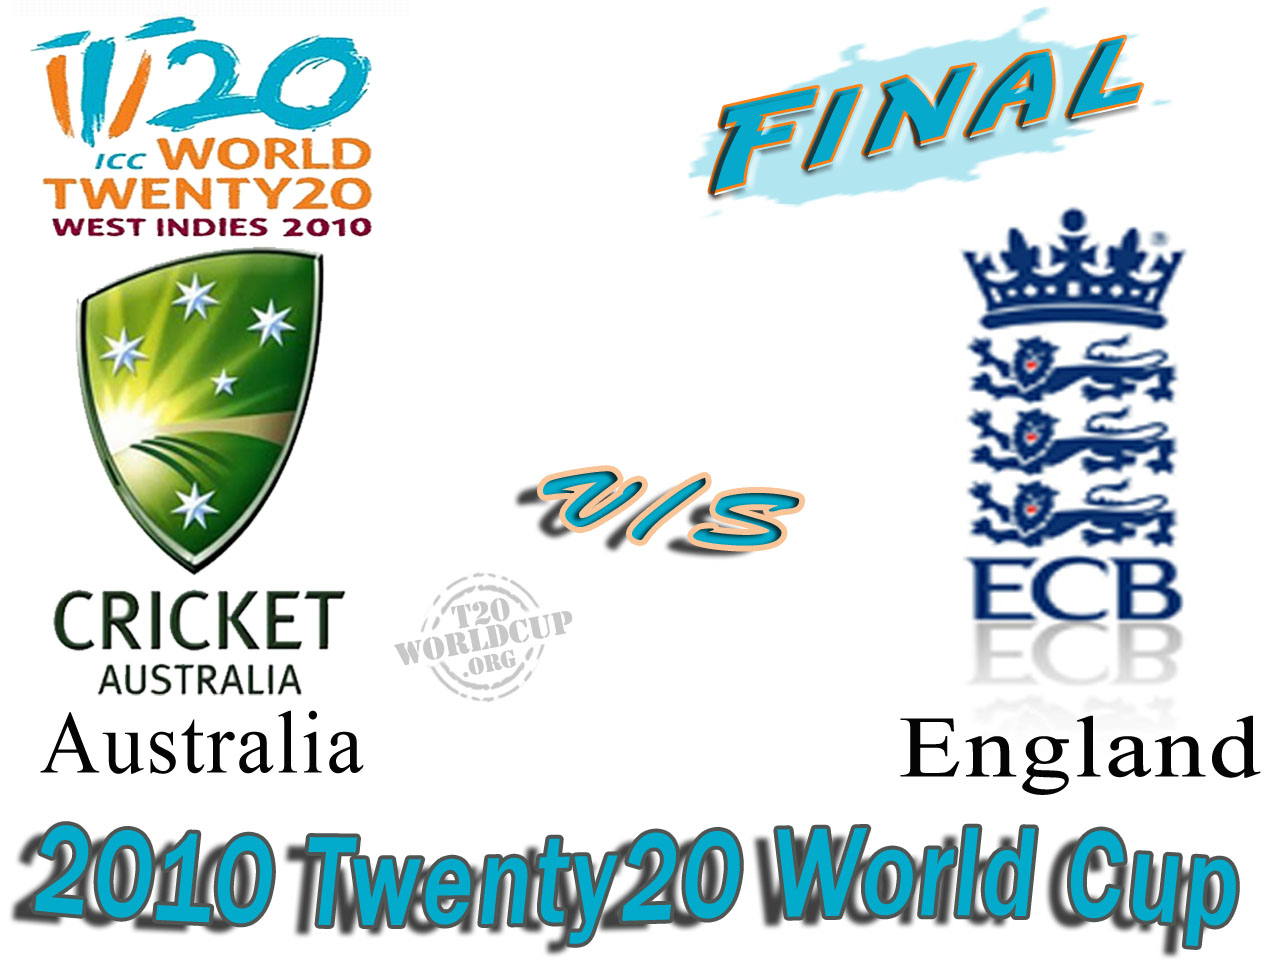 t20 world cup final 2010 Australia vs England